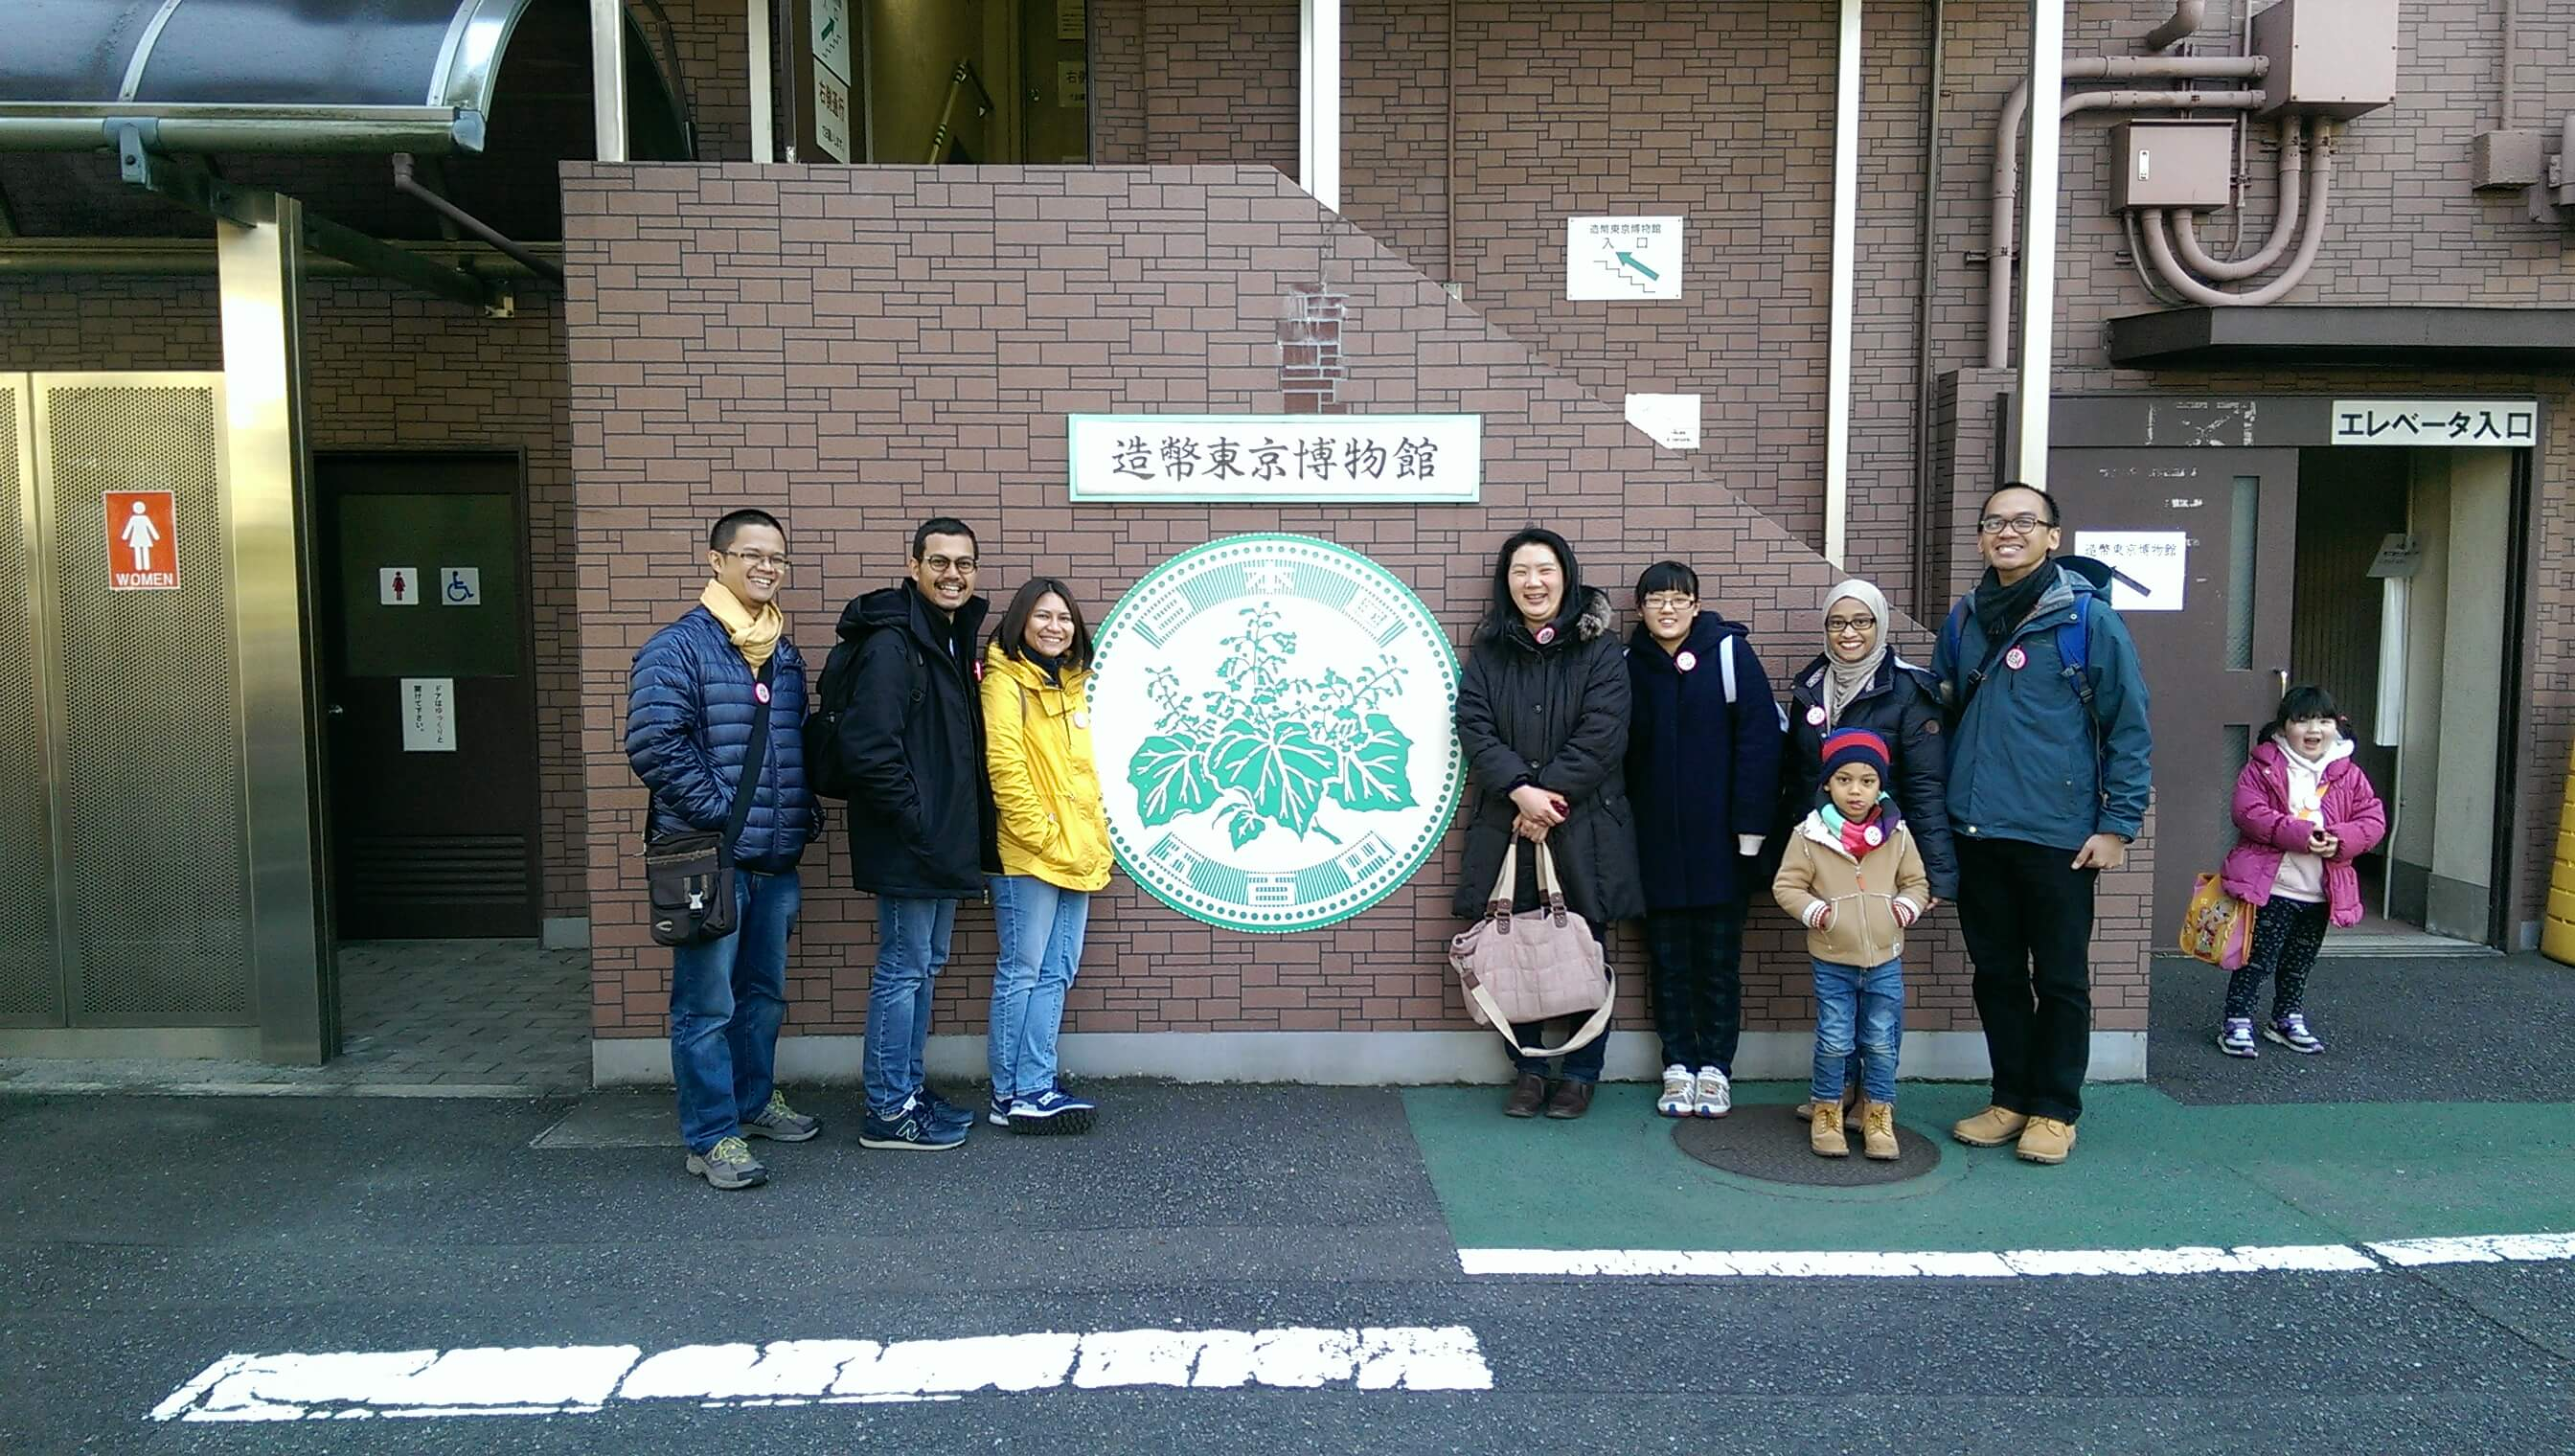 Visiting Tokyo Mint where Japanese Yen coins are made.